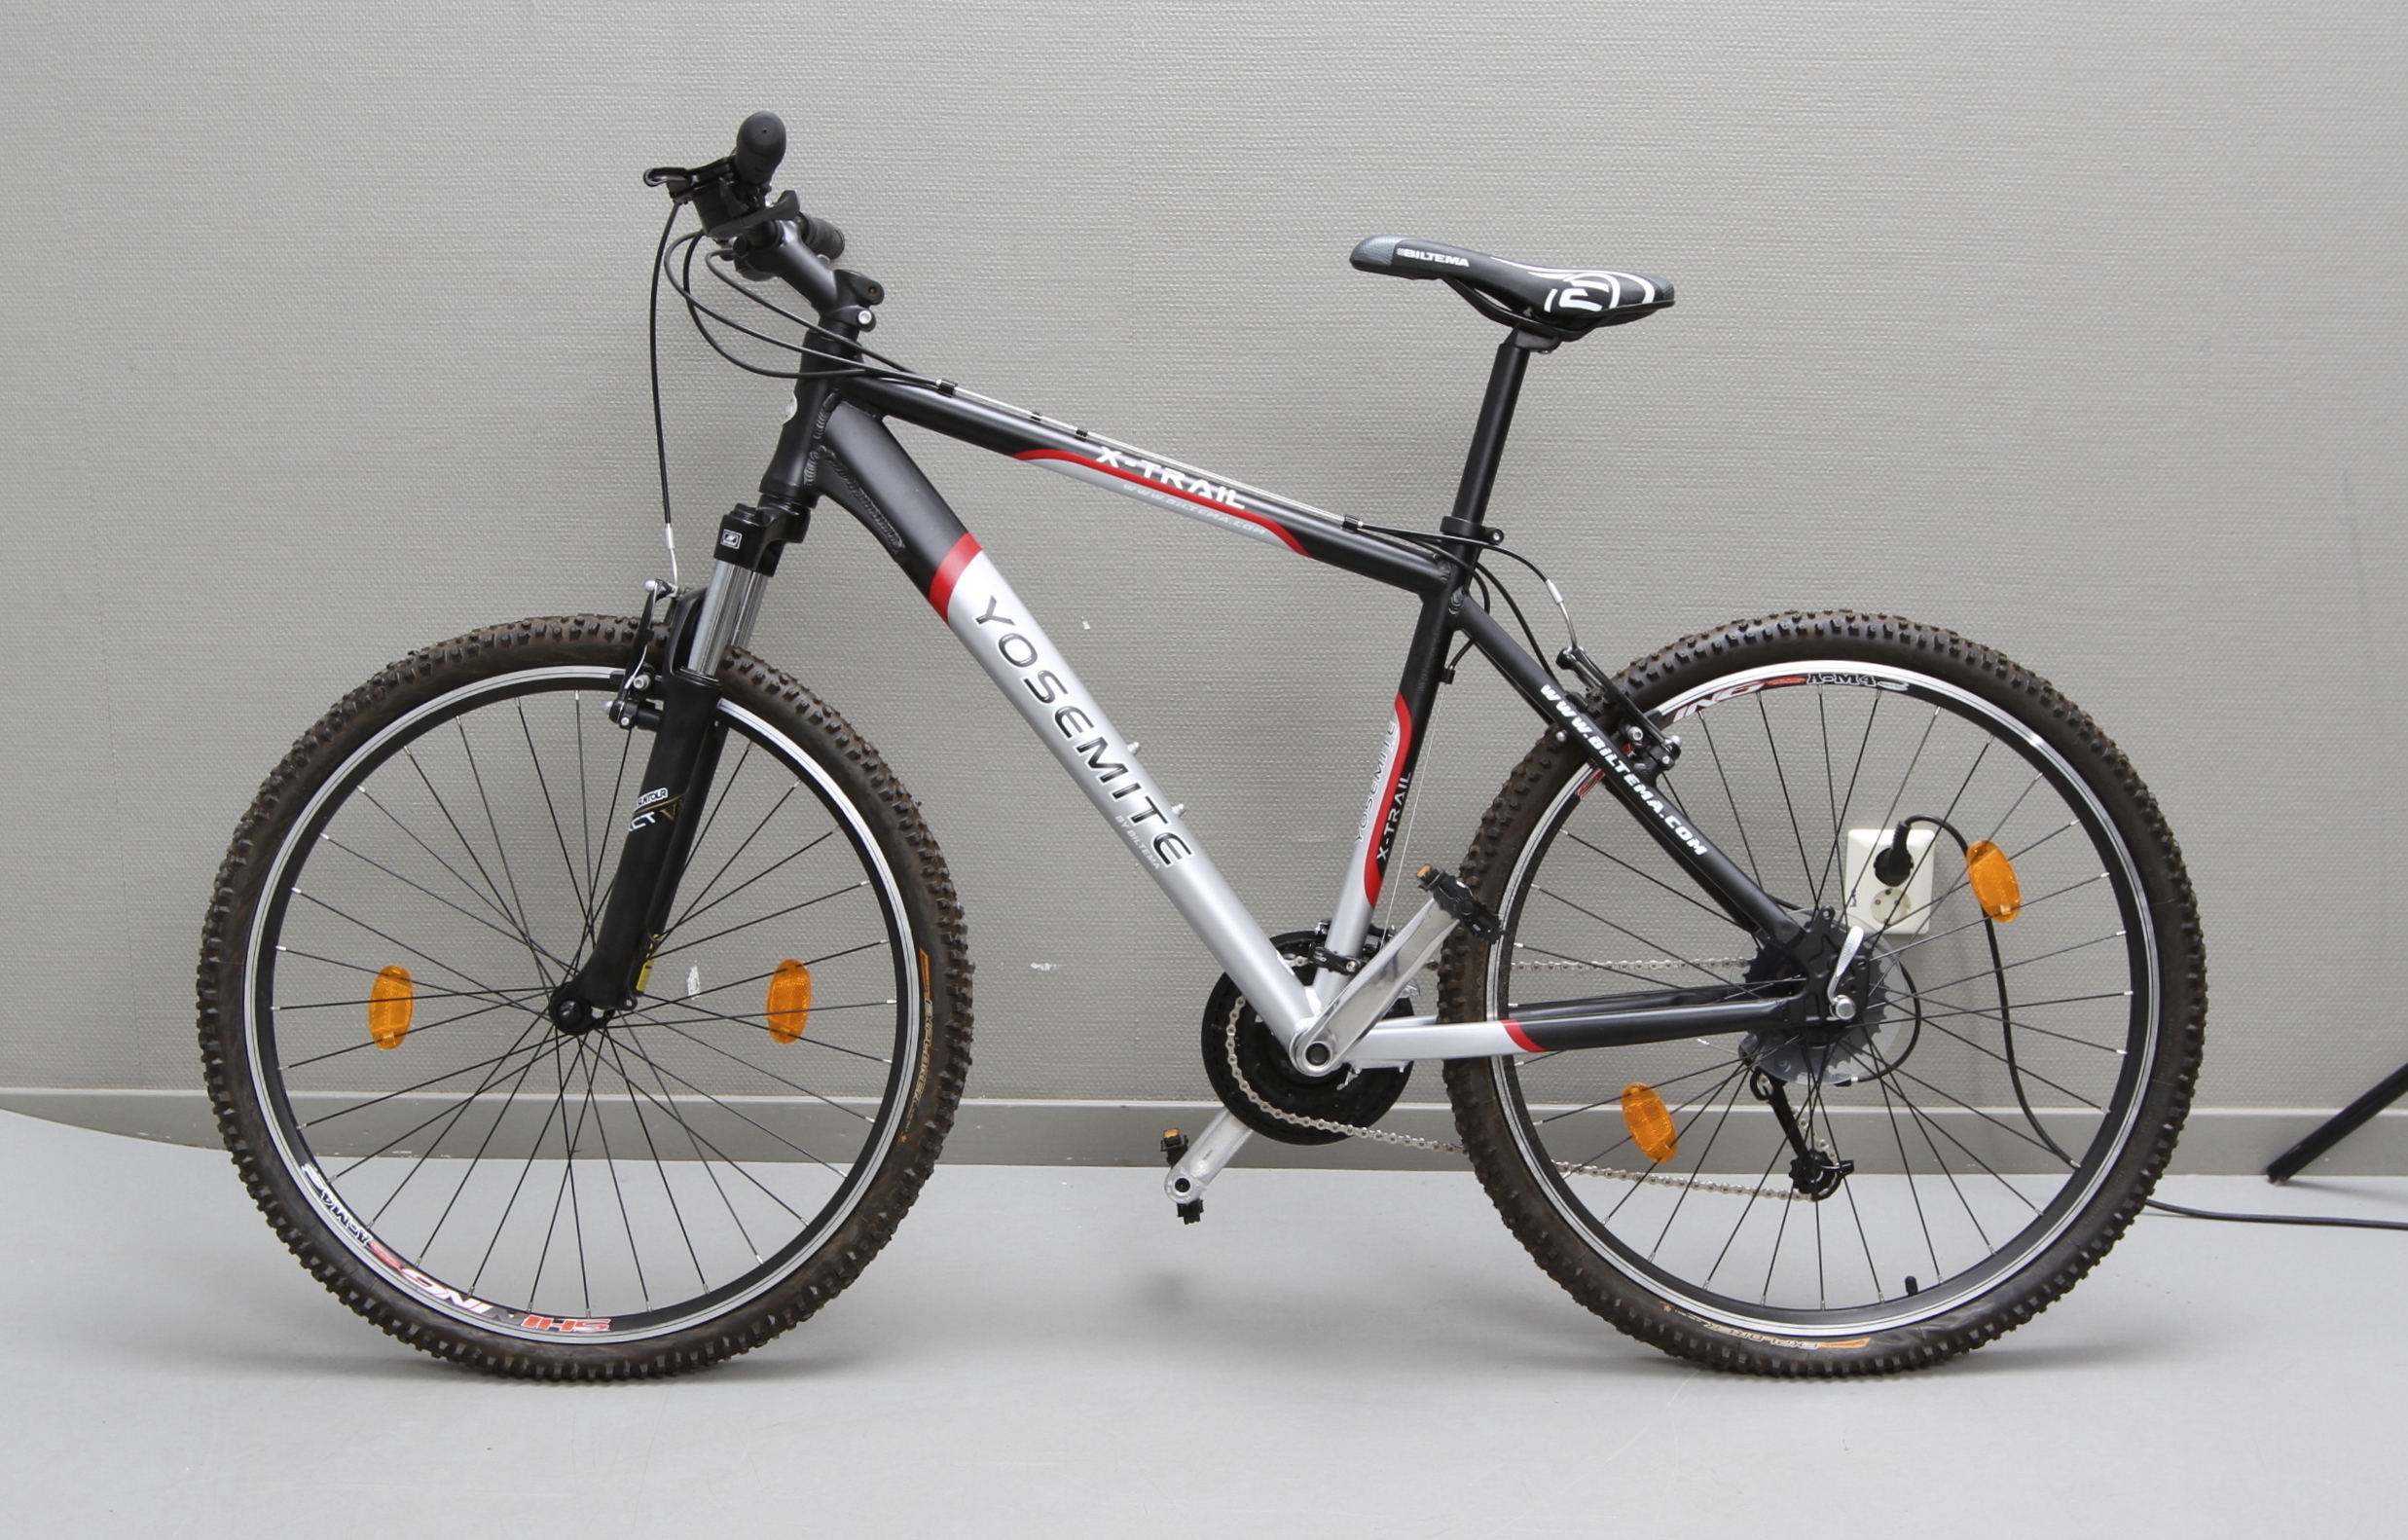 Helt nya HERRCYKEL, X-trail, Yosemite. Other - Bicycles & Vehicles - Auctionet ER-33